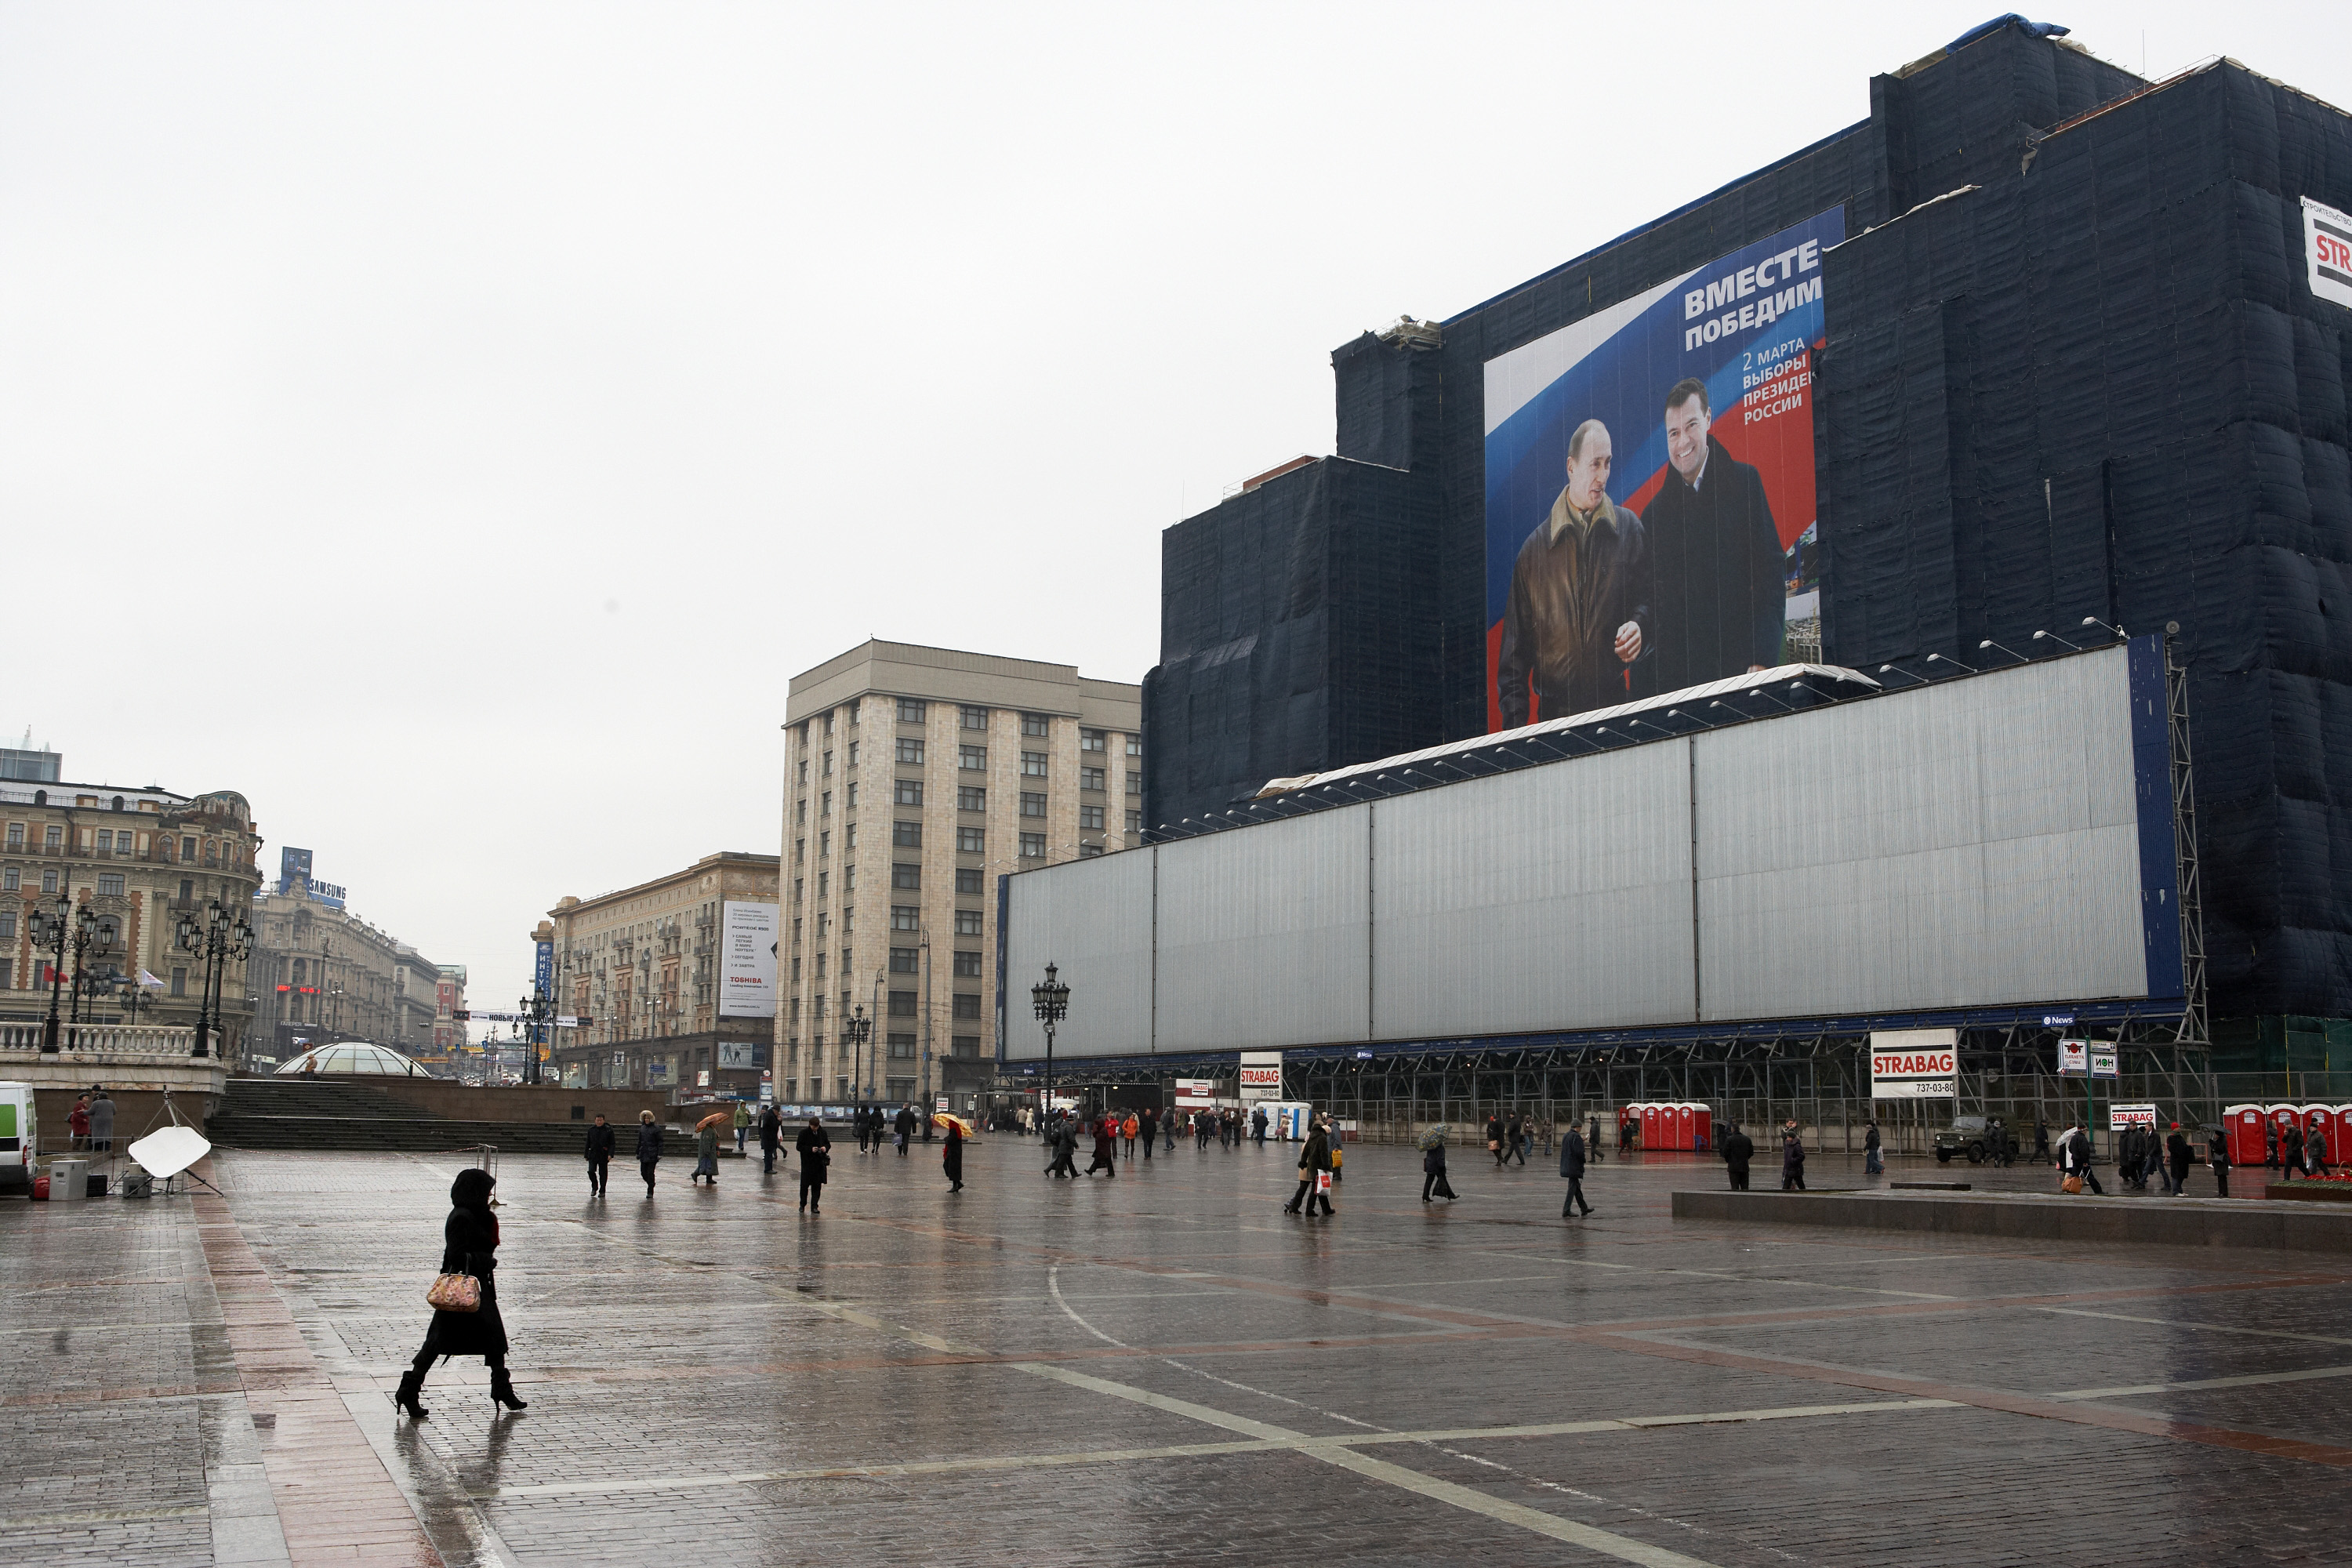 Central Moscow.